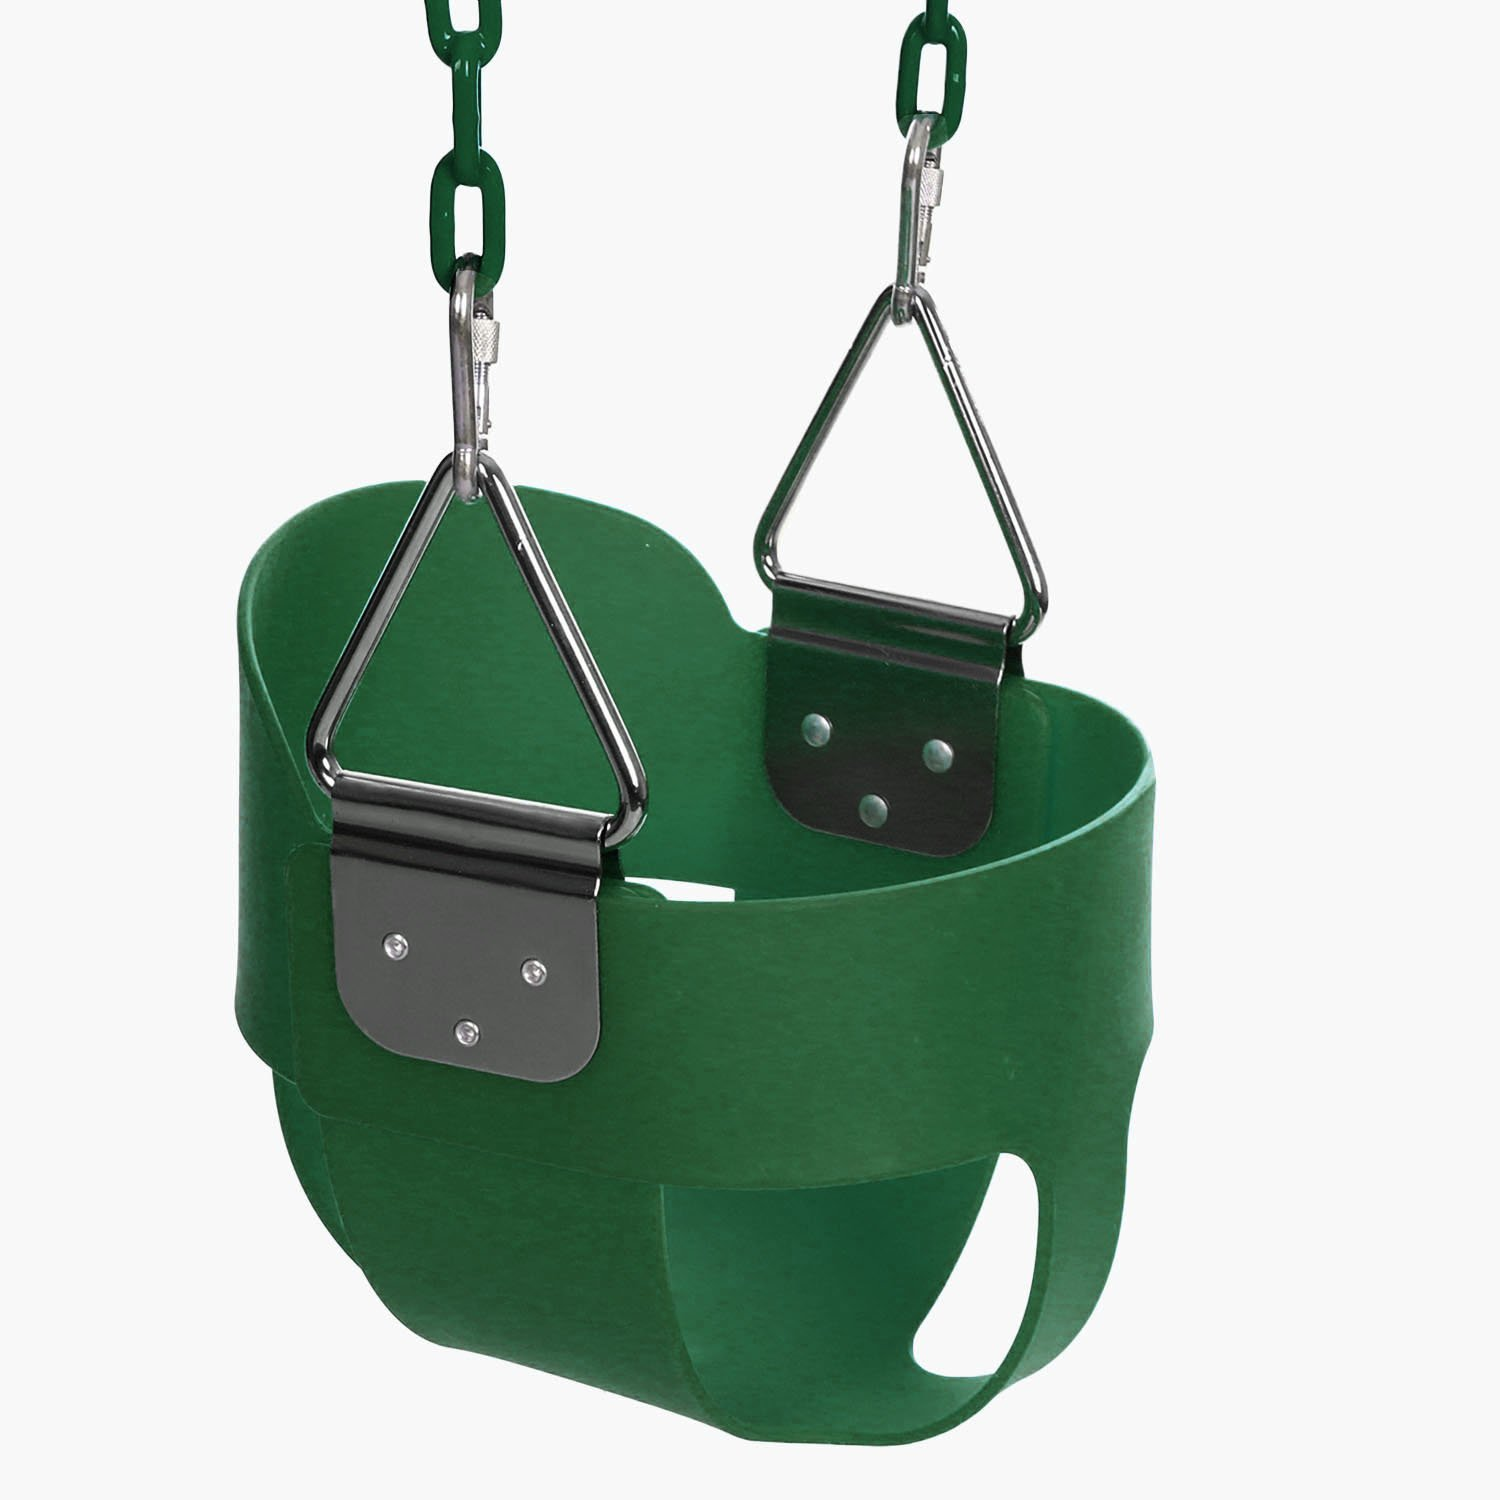 Funmily High Back Full Bucket Toddler Swing Seat with 60 inch Plastic Coated Swing Chains & 2 Snap Hooks Fully Assembled - Swing Set (Green) by Funmily (Image #1)